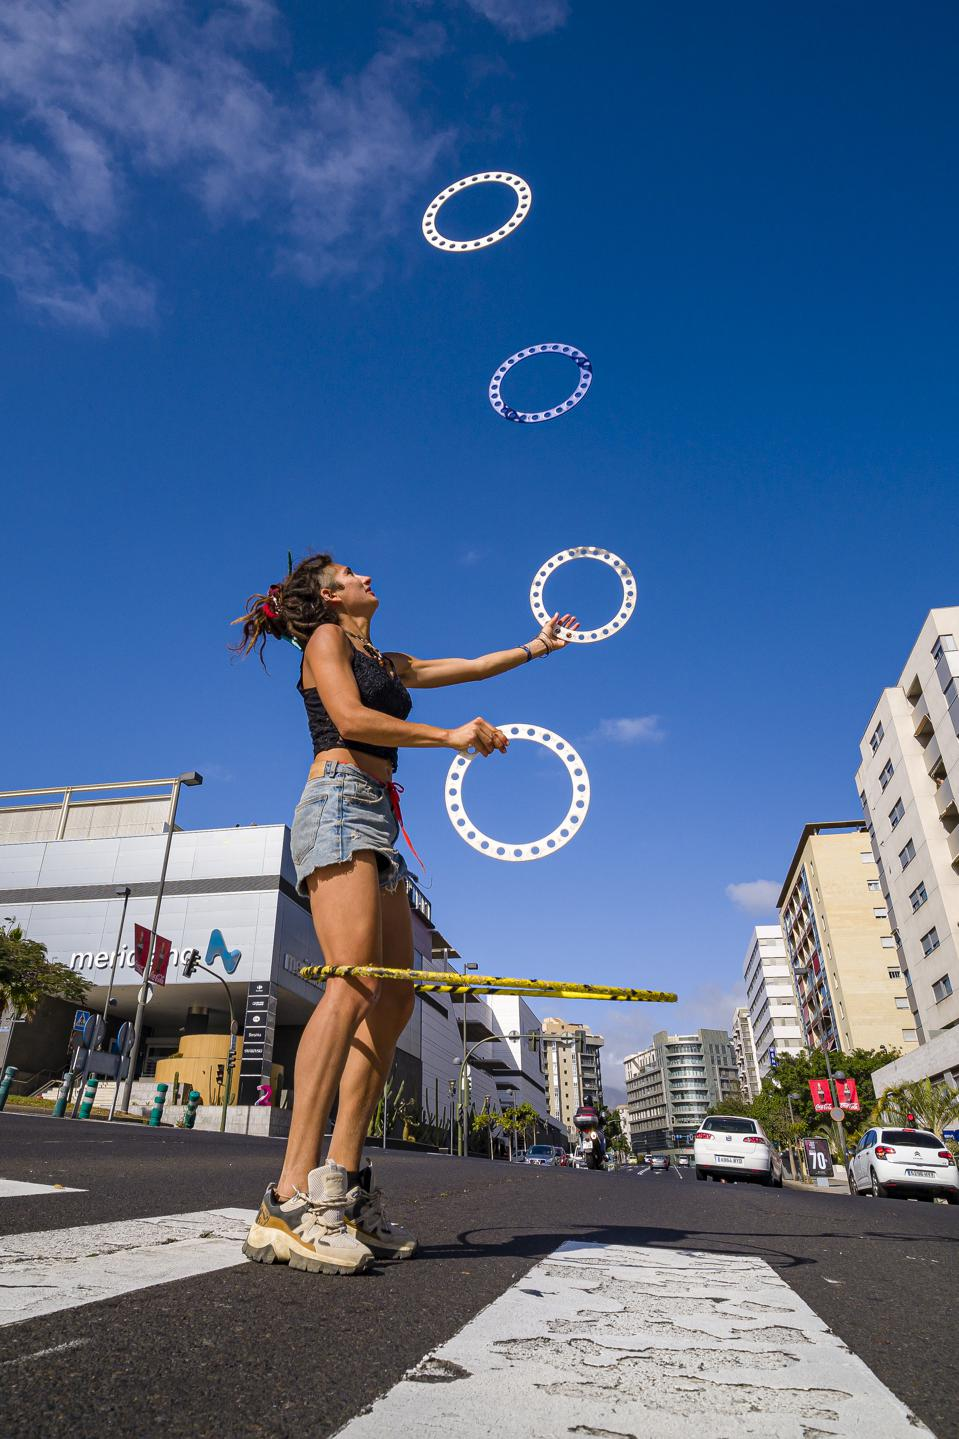 A young woman is juggling with 4 discs on a road crossing...